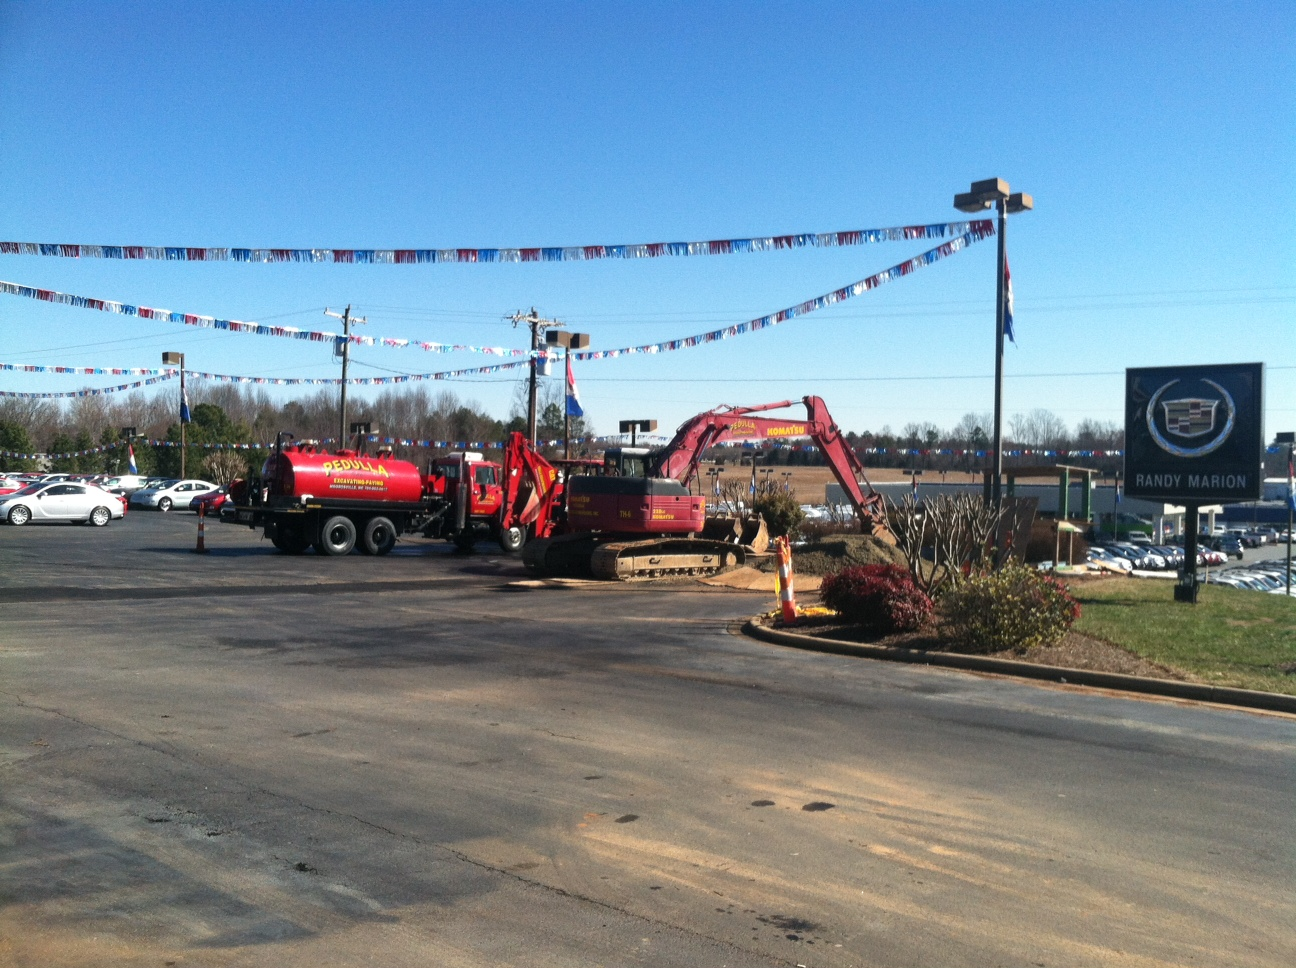 The Randy Marion Automotive Group: Construction Begins on ...